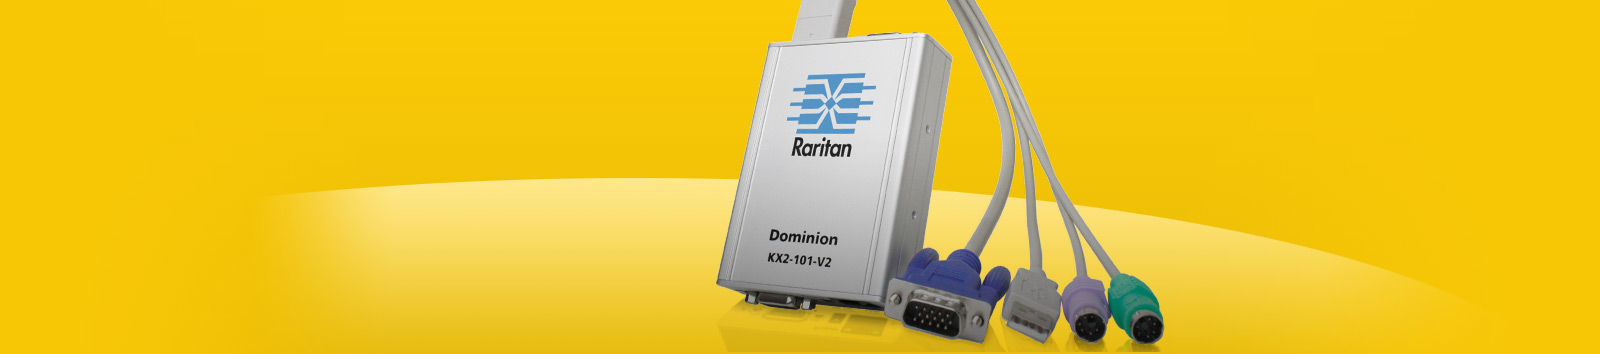 Raritan Dominion DKX2-101-V2 IP KVM Gateway - 1080P VGA - 256-bit AES/FIPS 140-2 Encryption